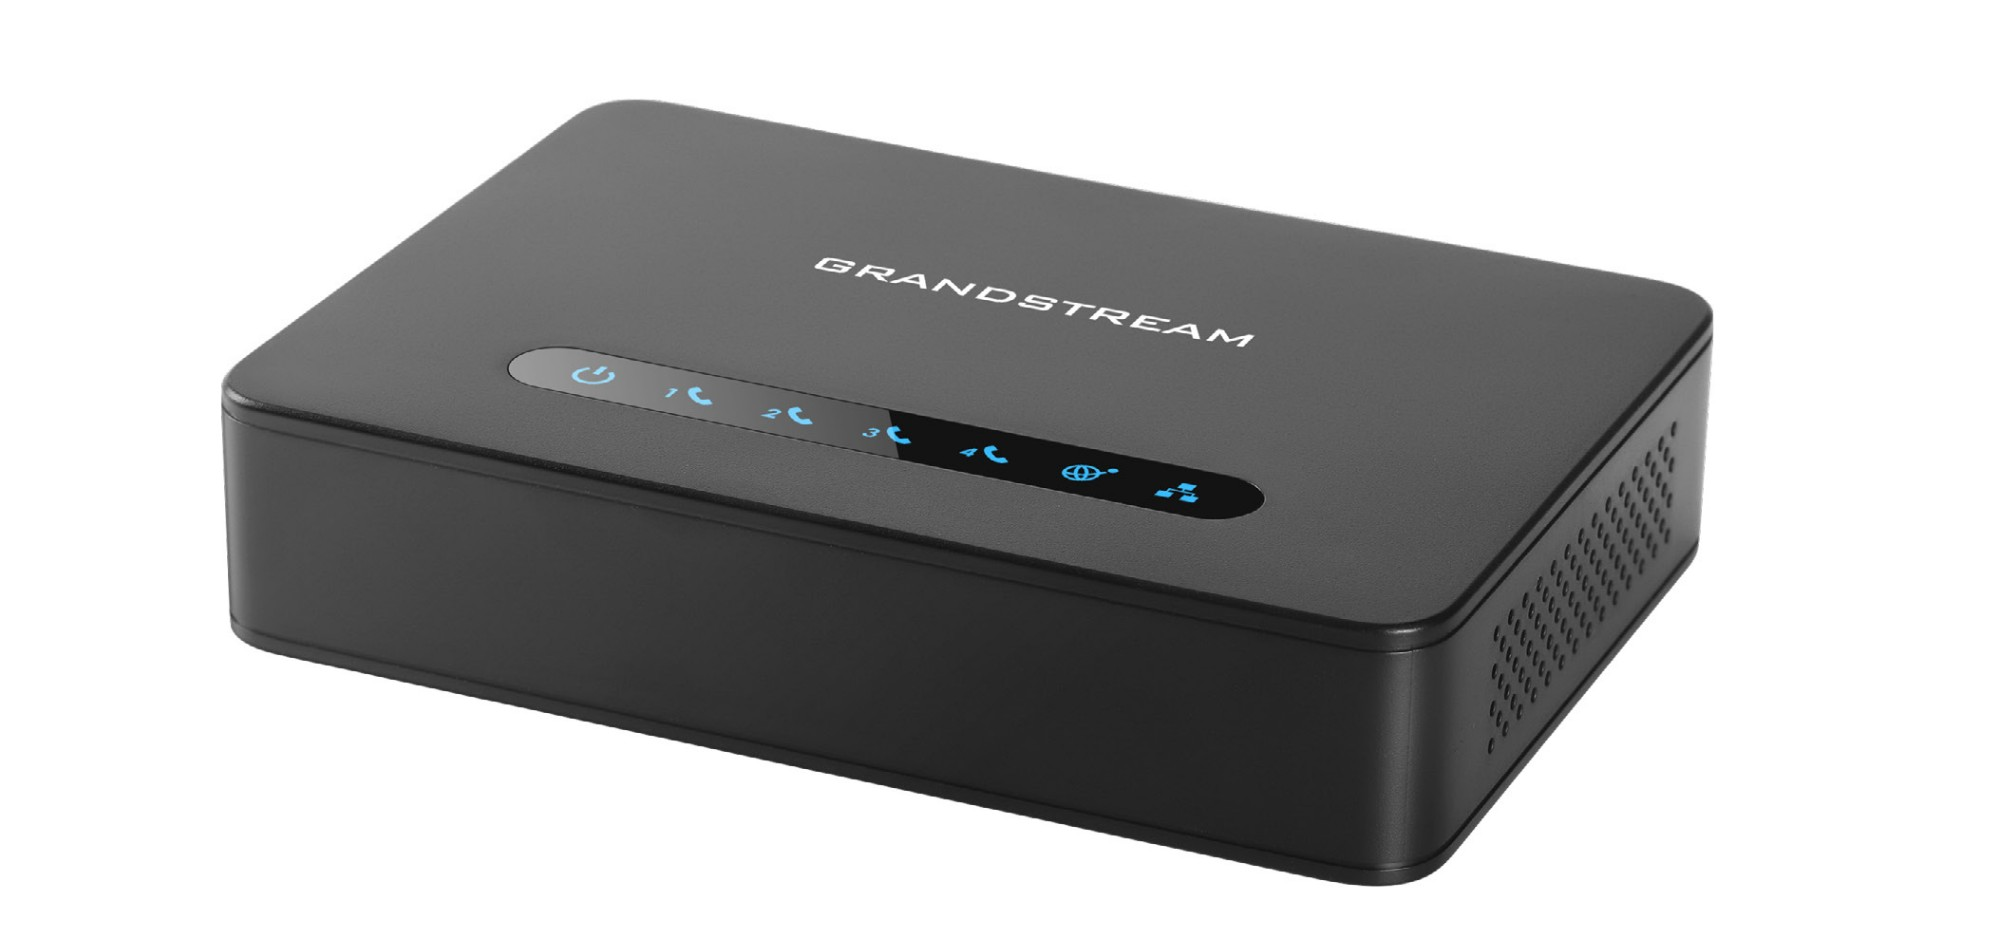 Grandstream Networks HT814 VoIP telephone adapter